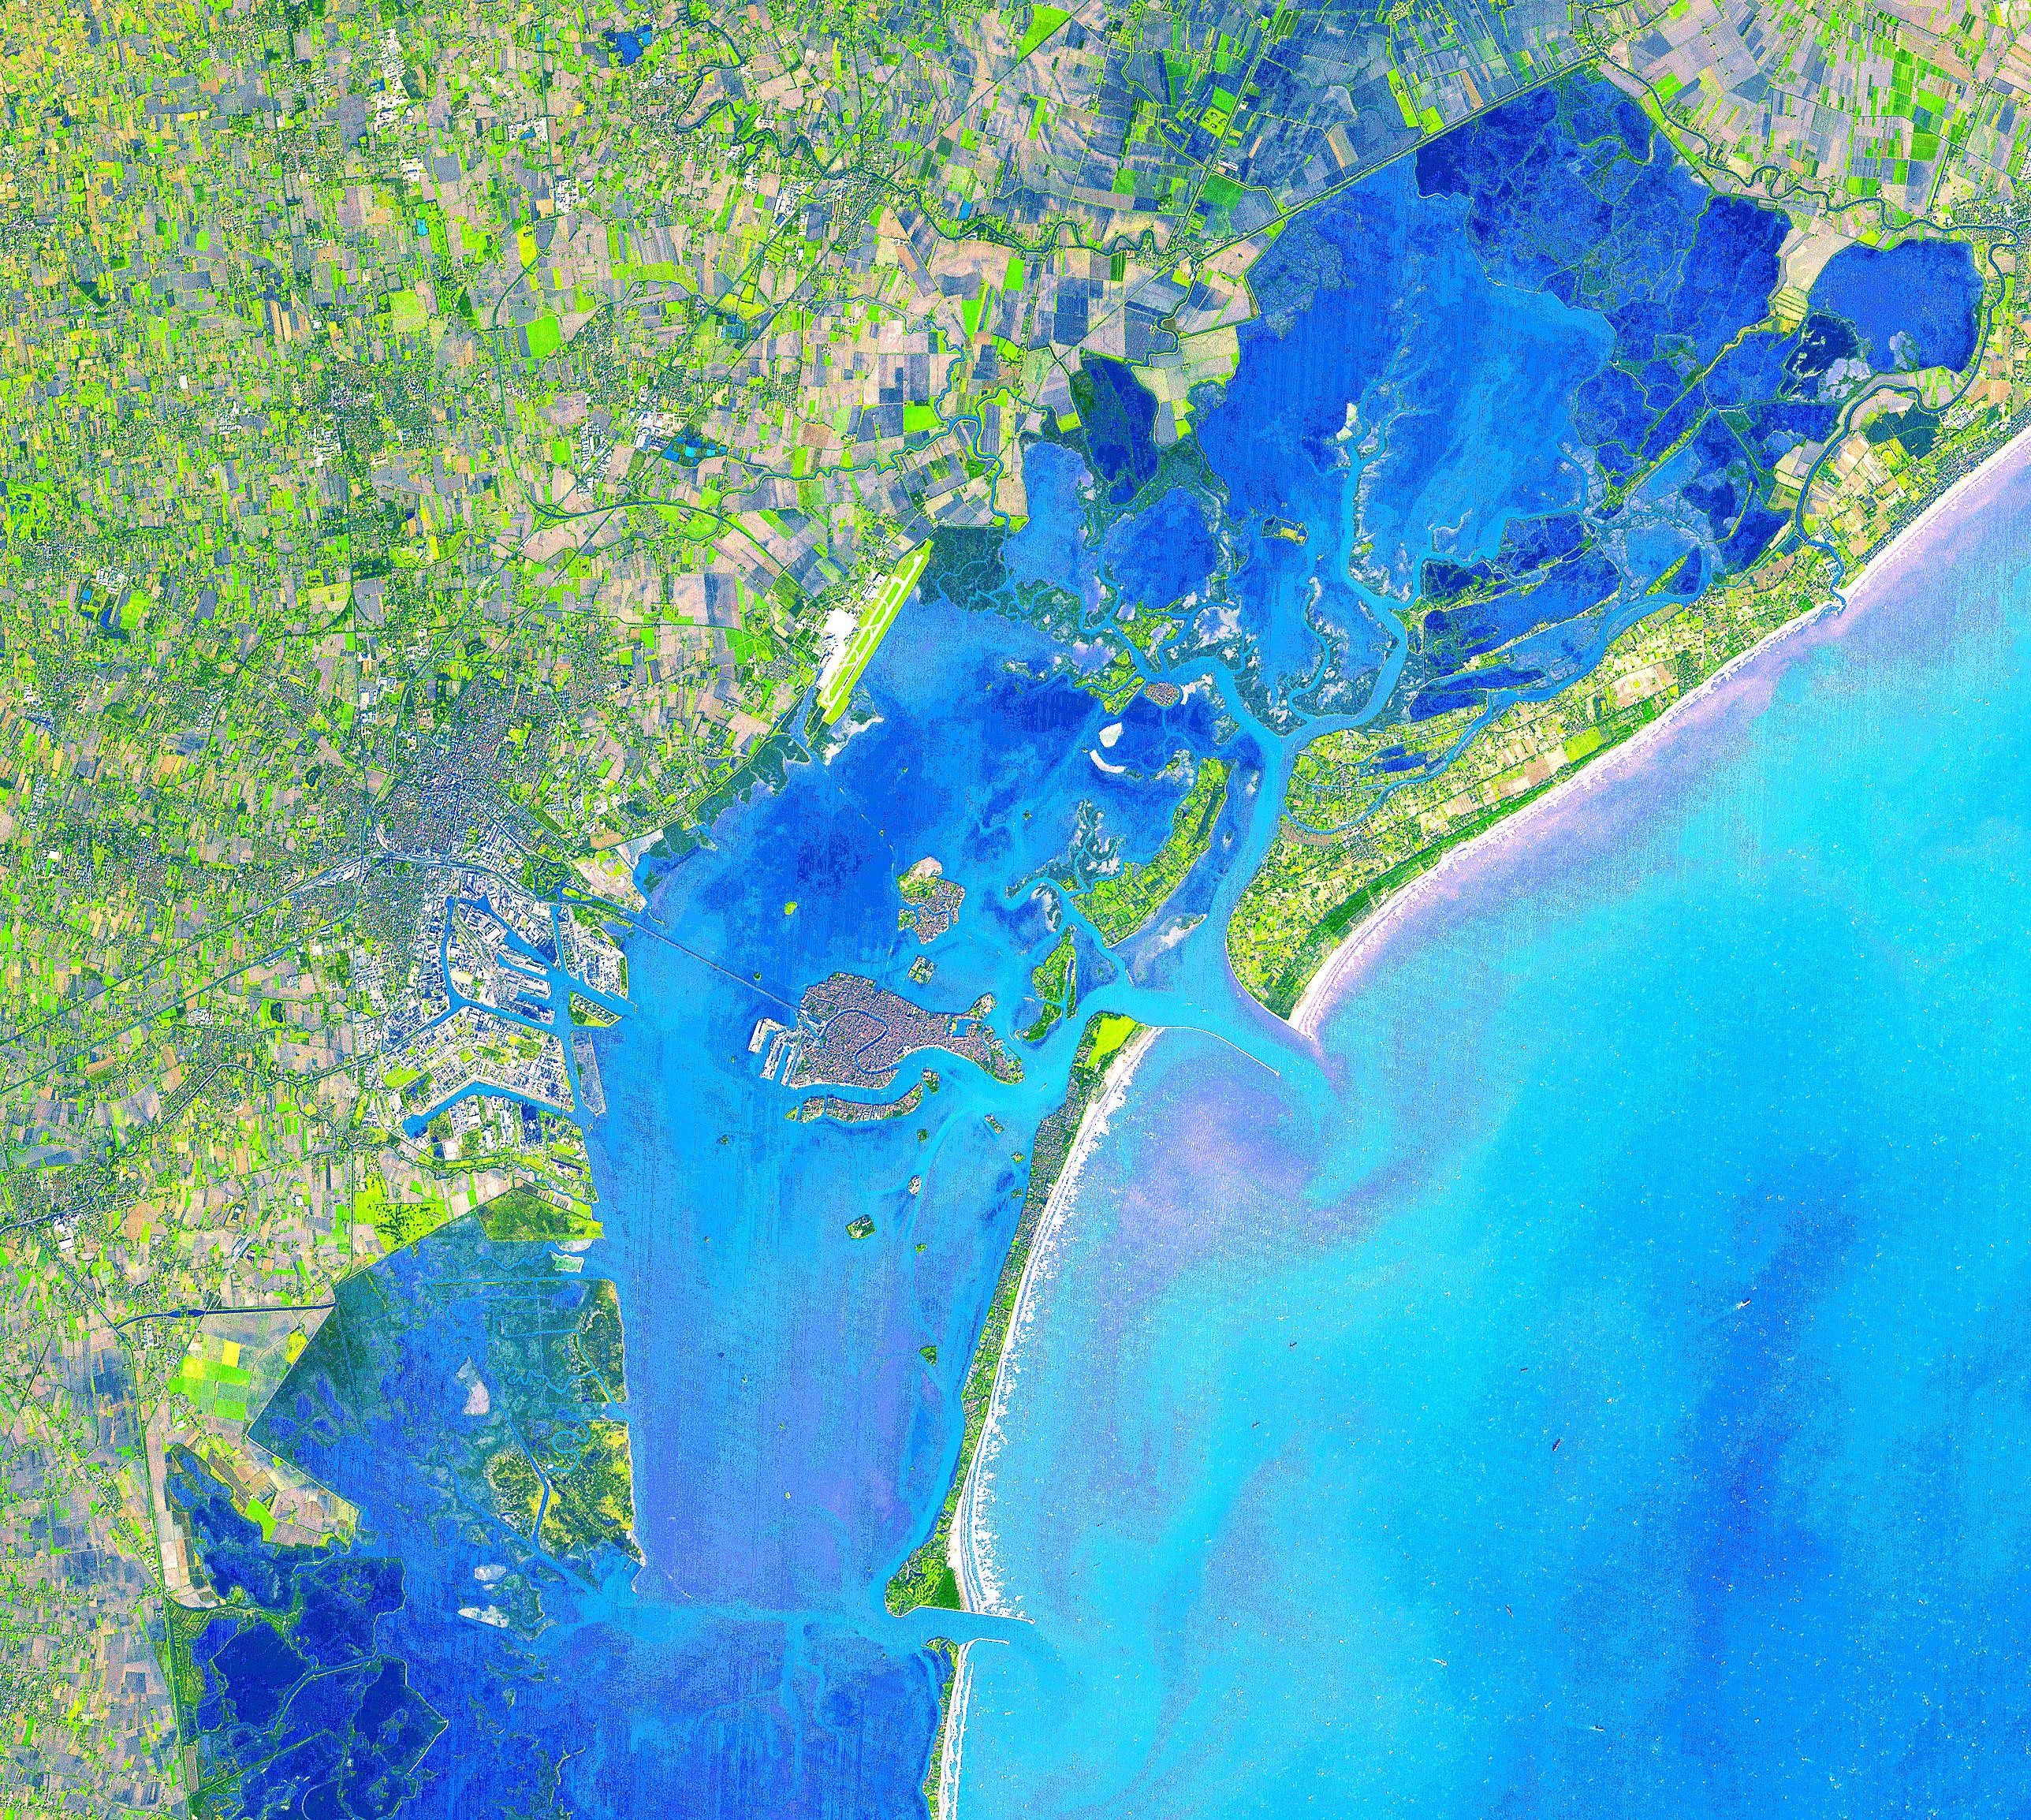 The city of Venice as seen from space. Image taken by ASTER.